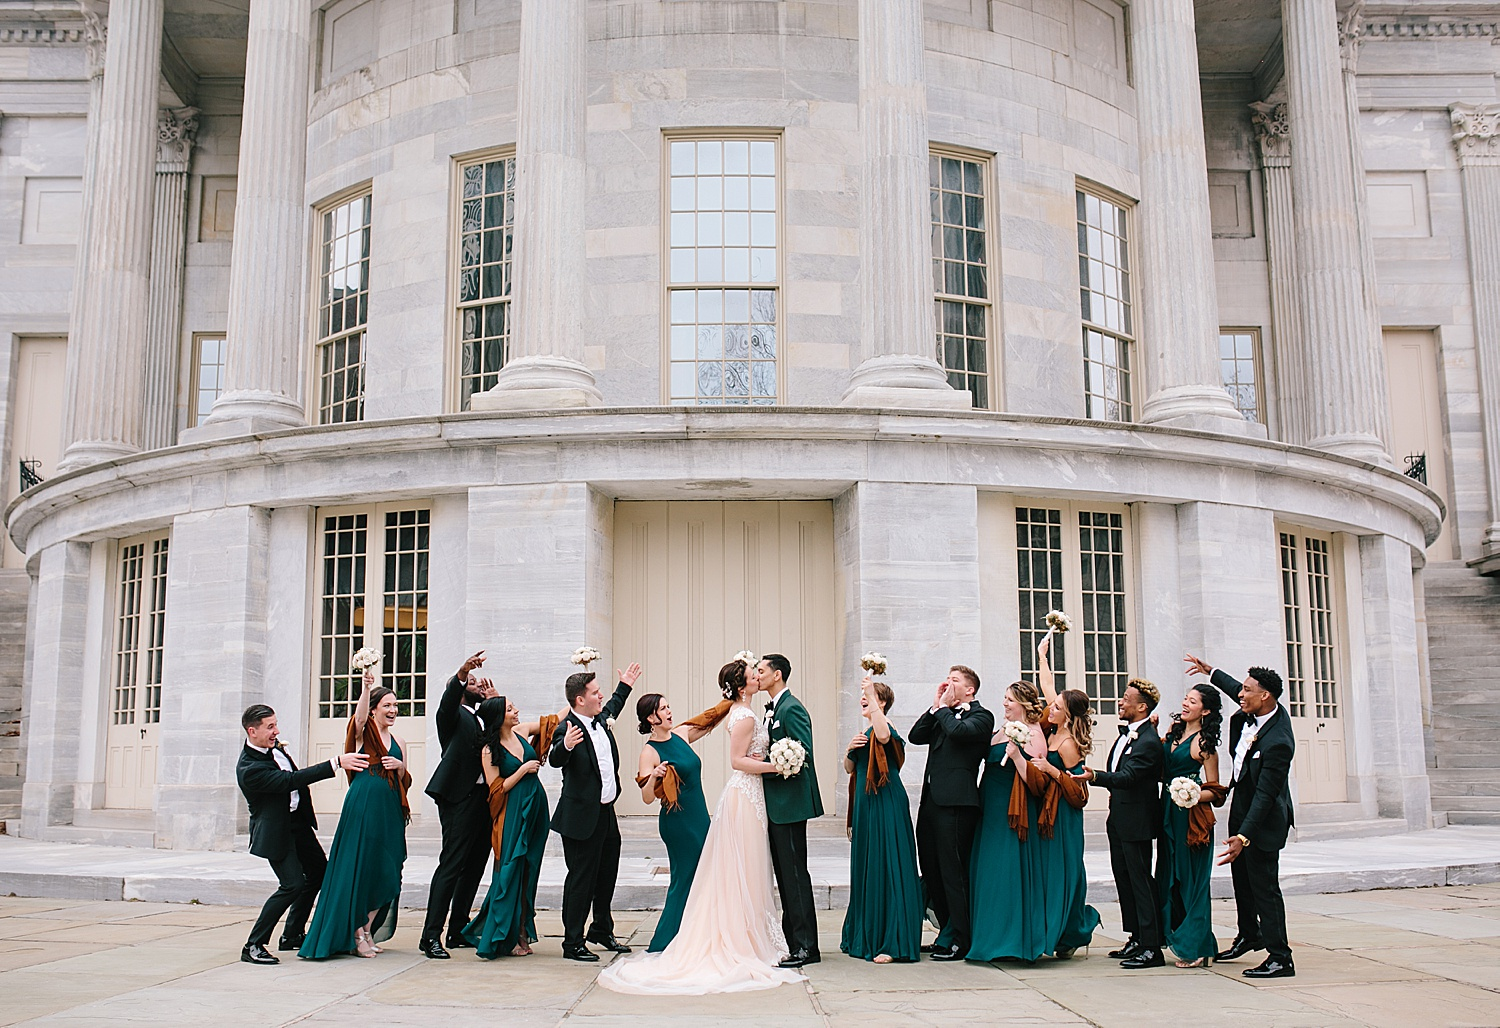 kirstentony_uniontrust_finleycatering_christchurch_philadelphia_wedding_image_0695.jpg